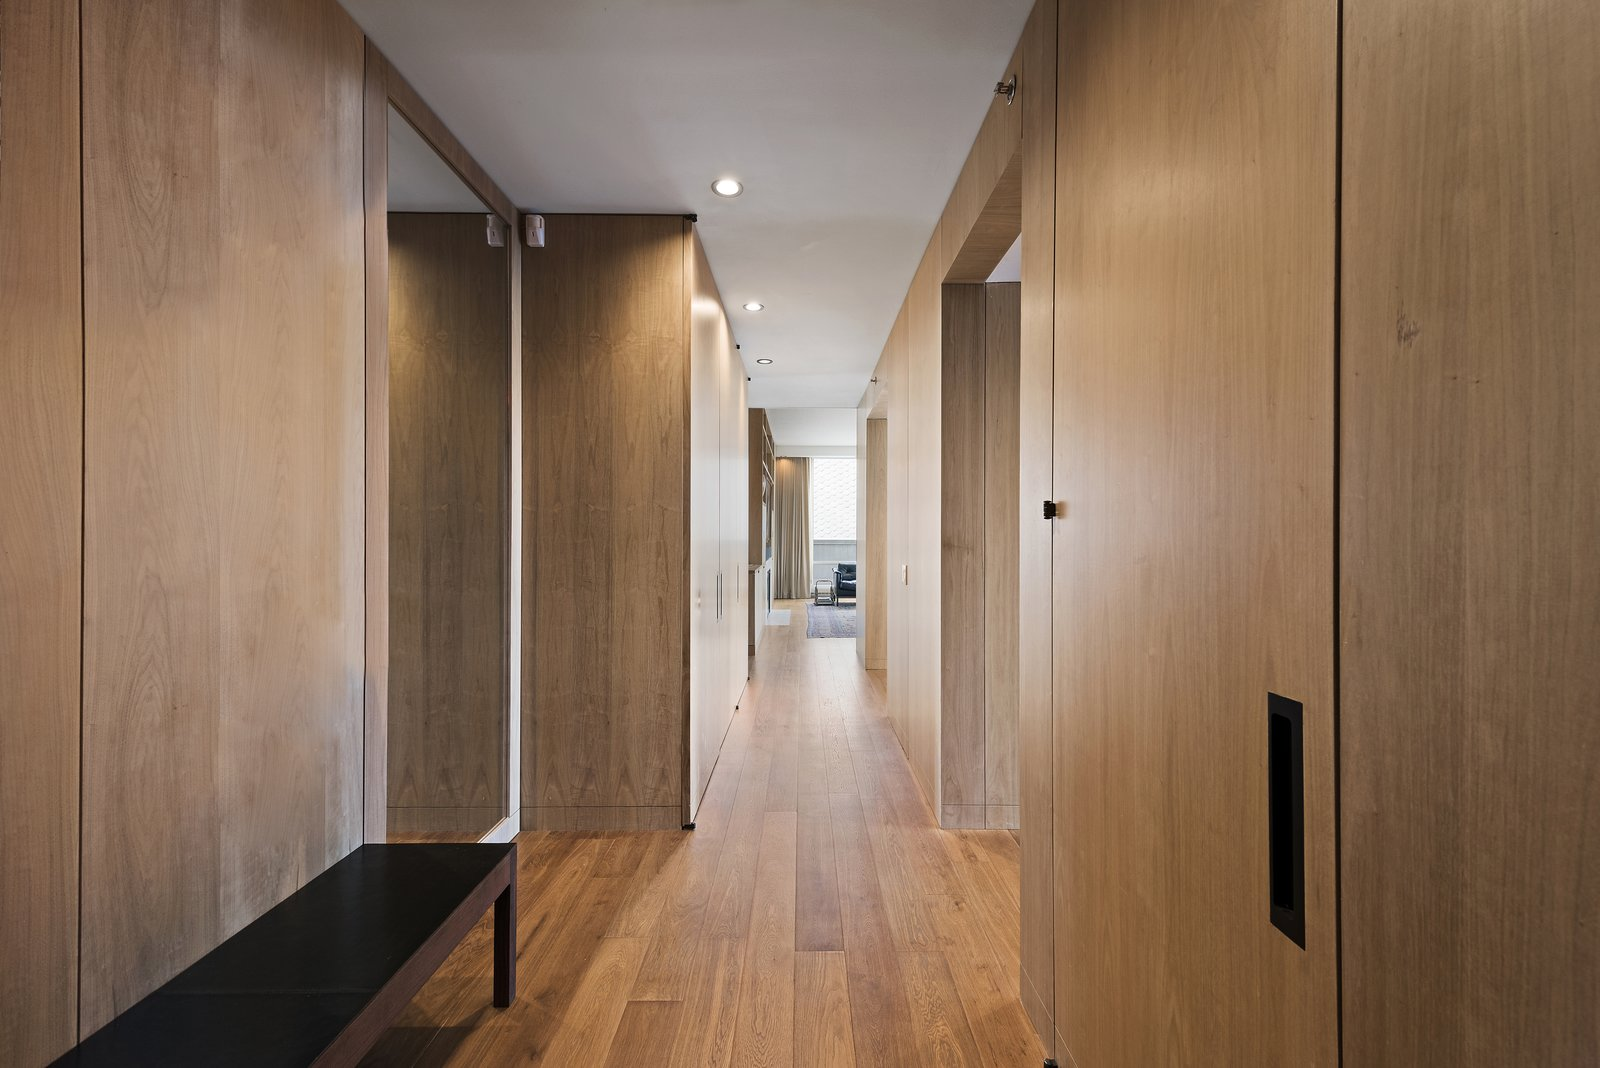 Wood-lined walls hold storage space and match the six-inch-wide plank oak flooring.